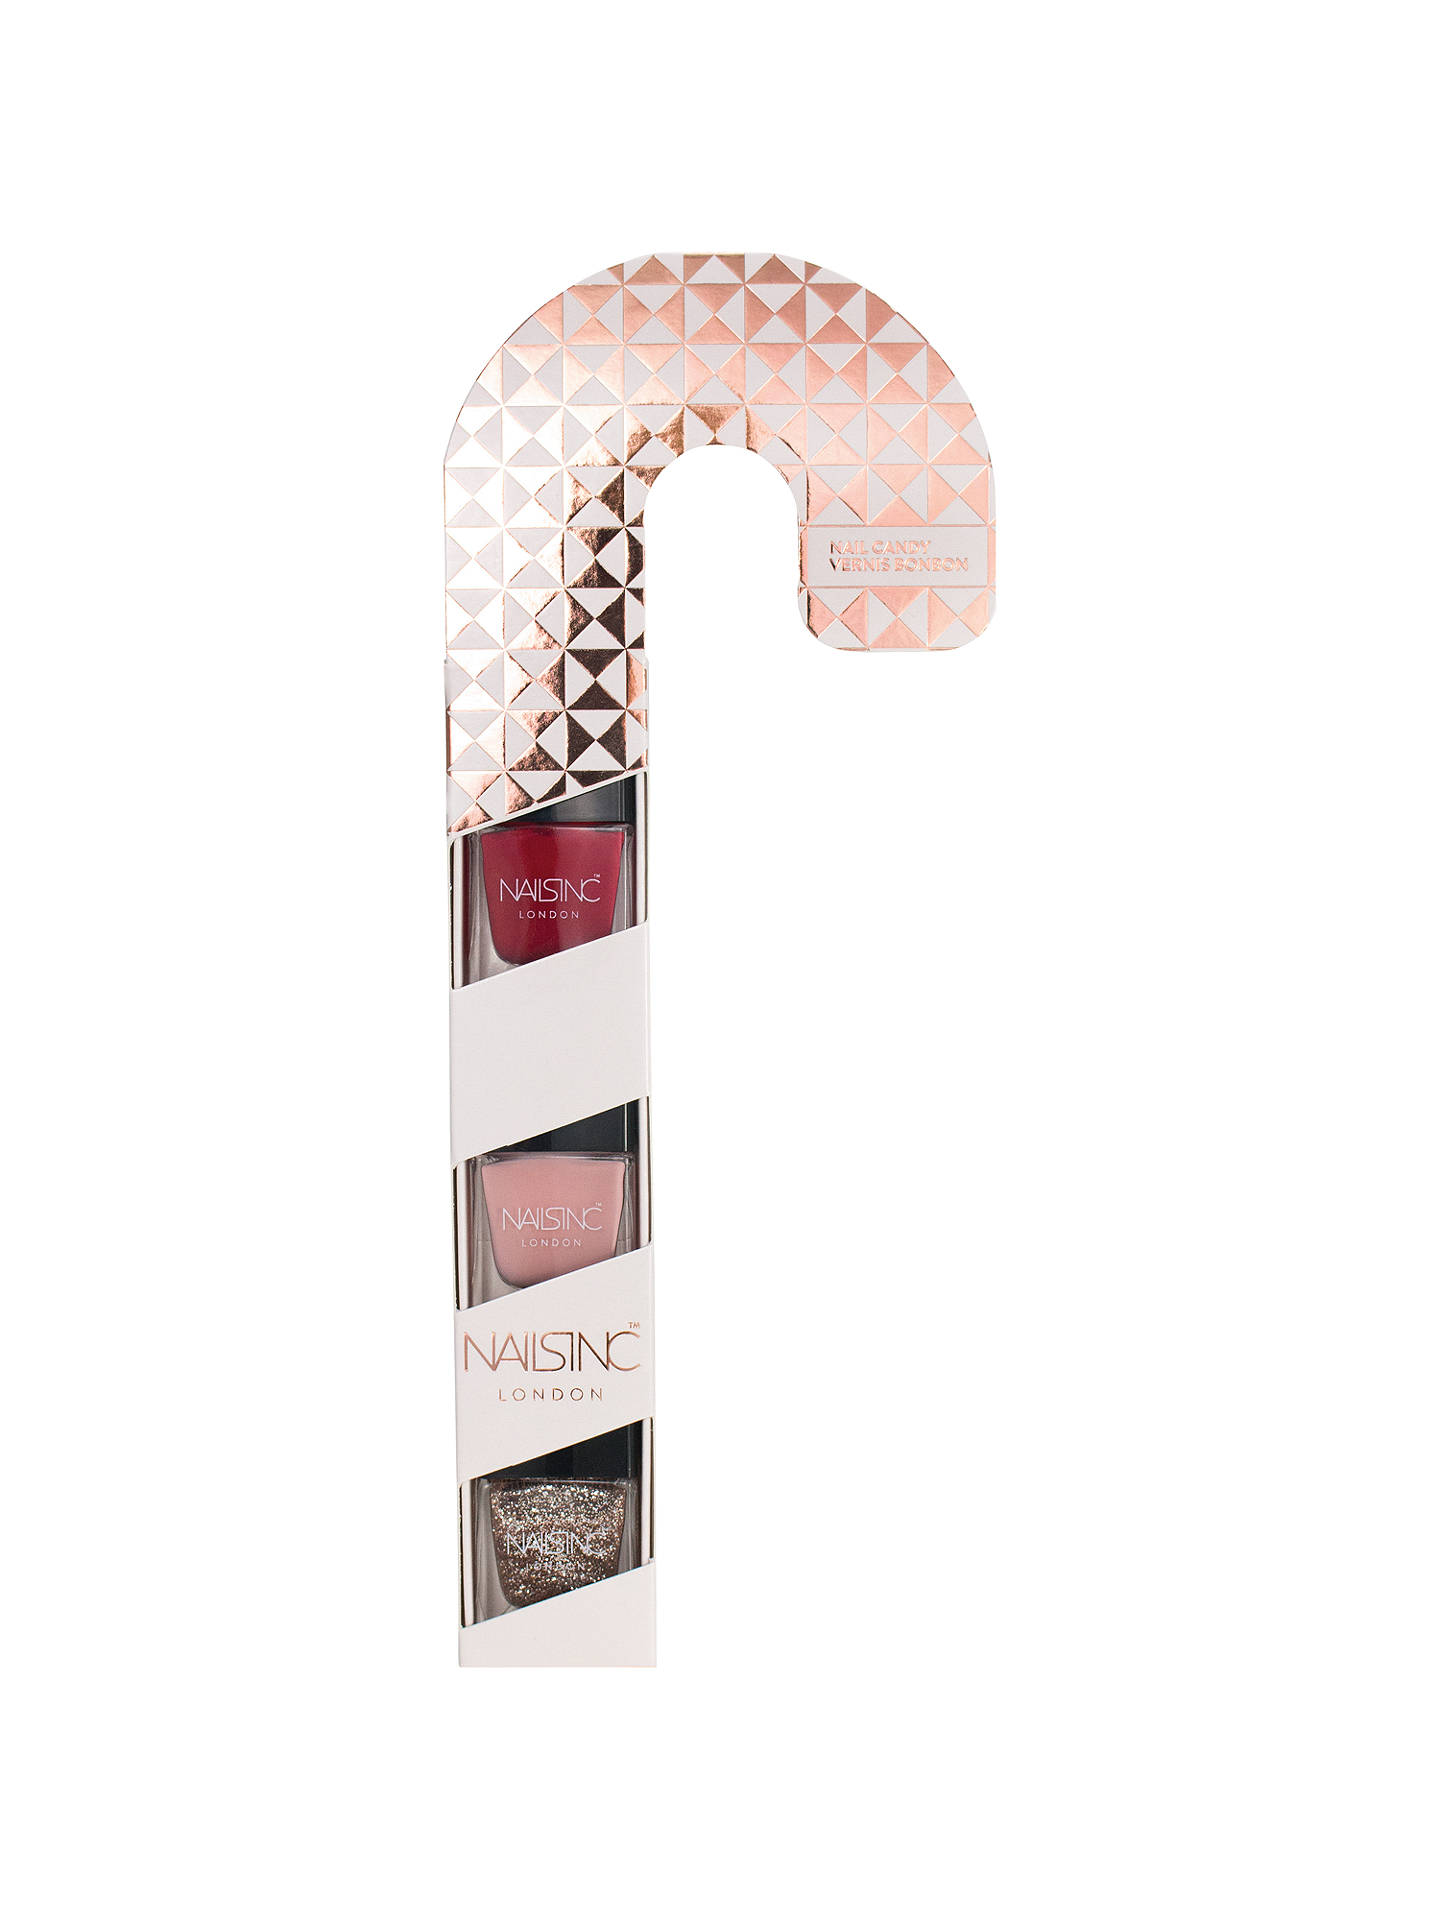 BuyNails Inc Nail Candy Cane Gift Set Online at johnlewis.com